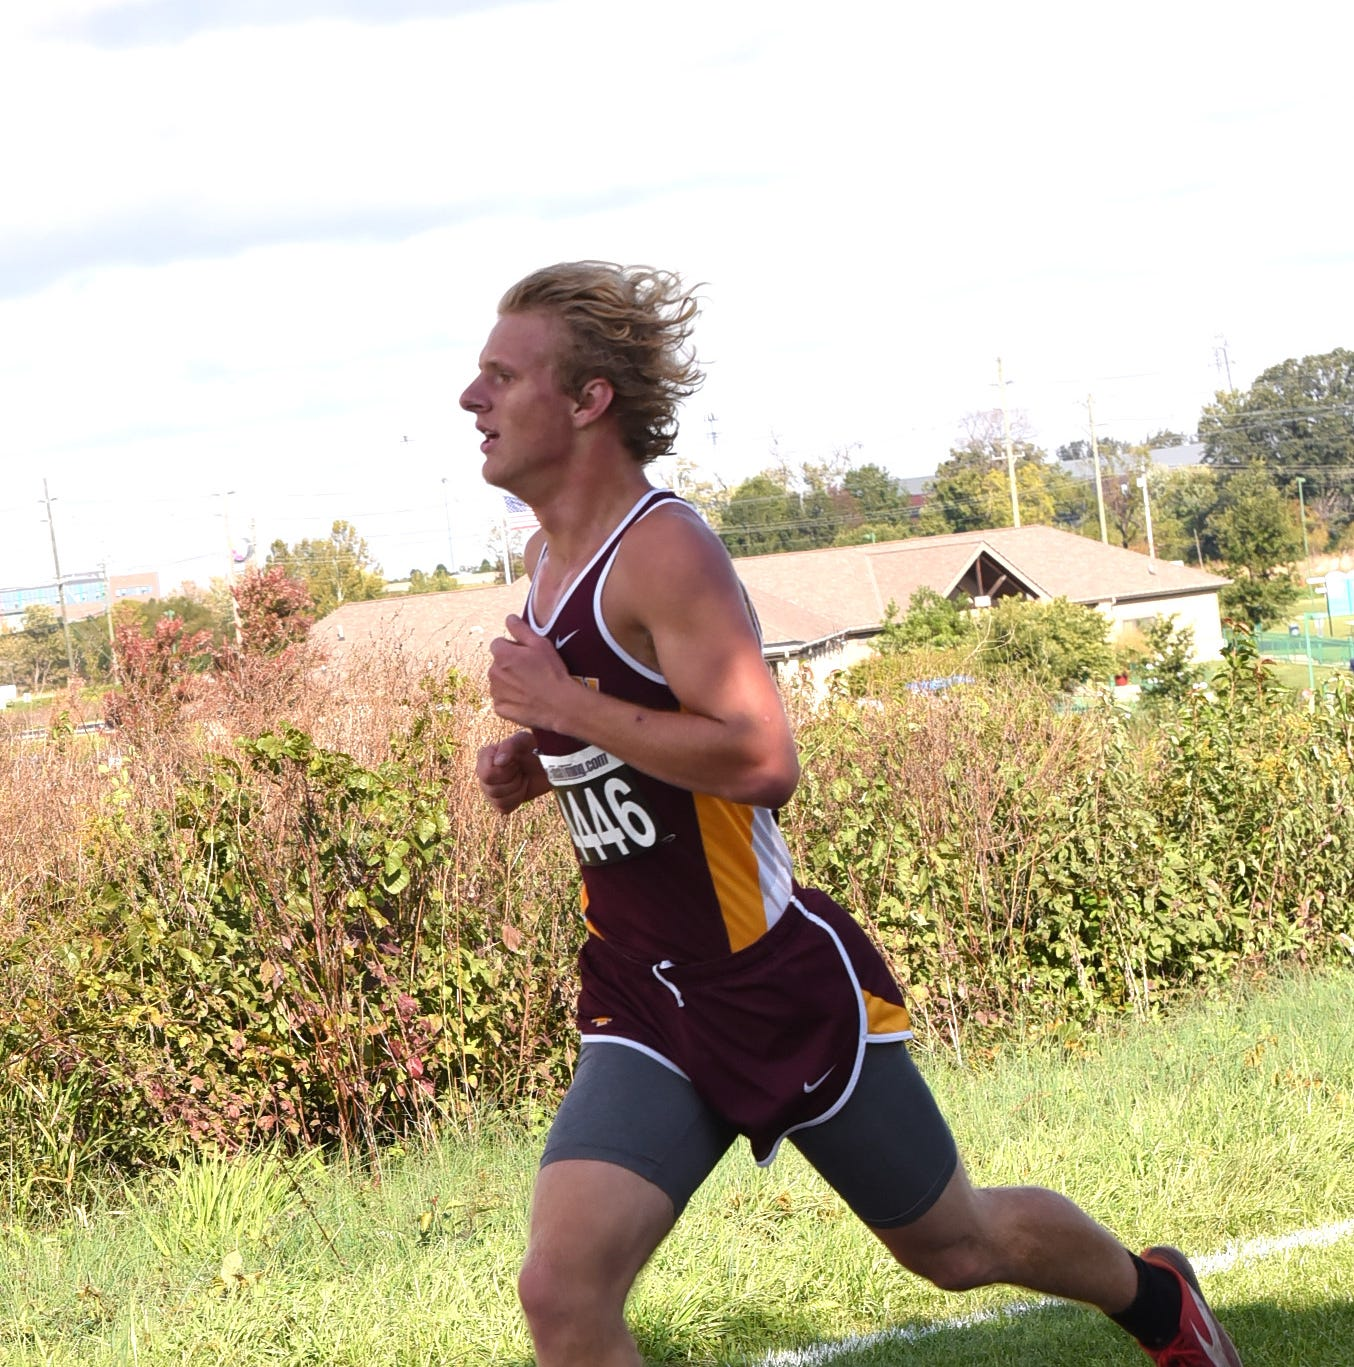 Peter Morton of Turpin takes first place in the Boys D1-A race at the Southwest District Cross Country Championships, October 20, 2018.